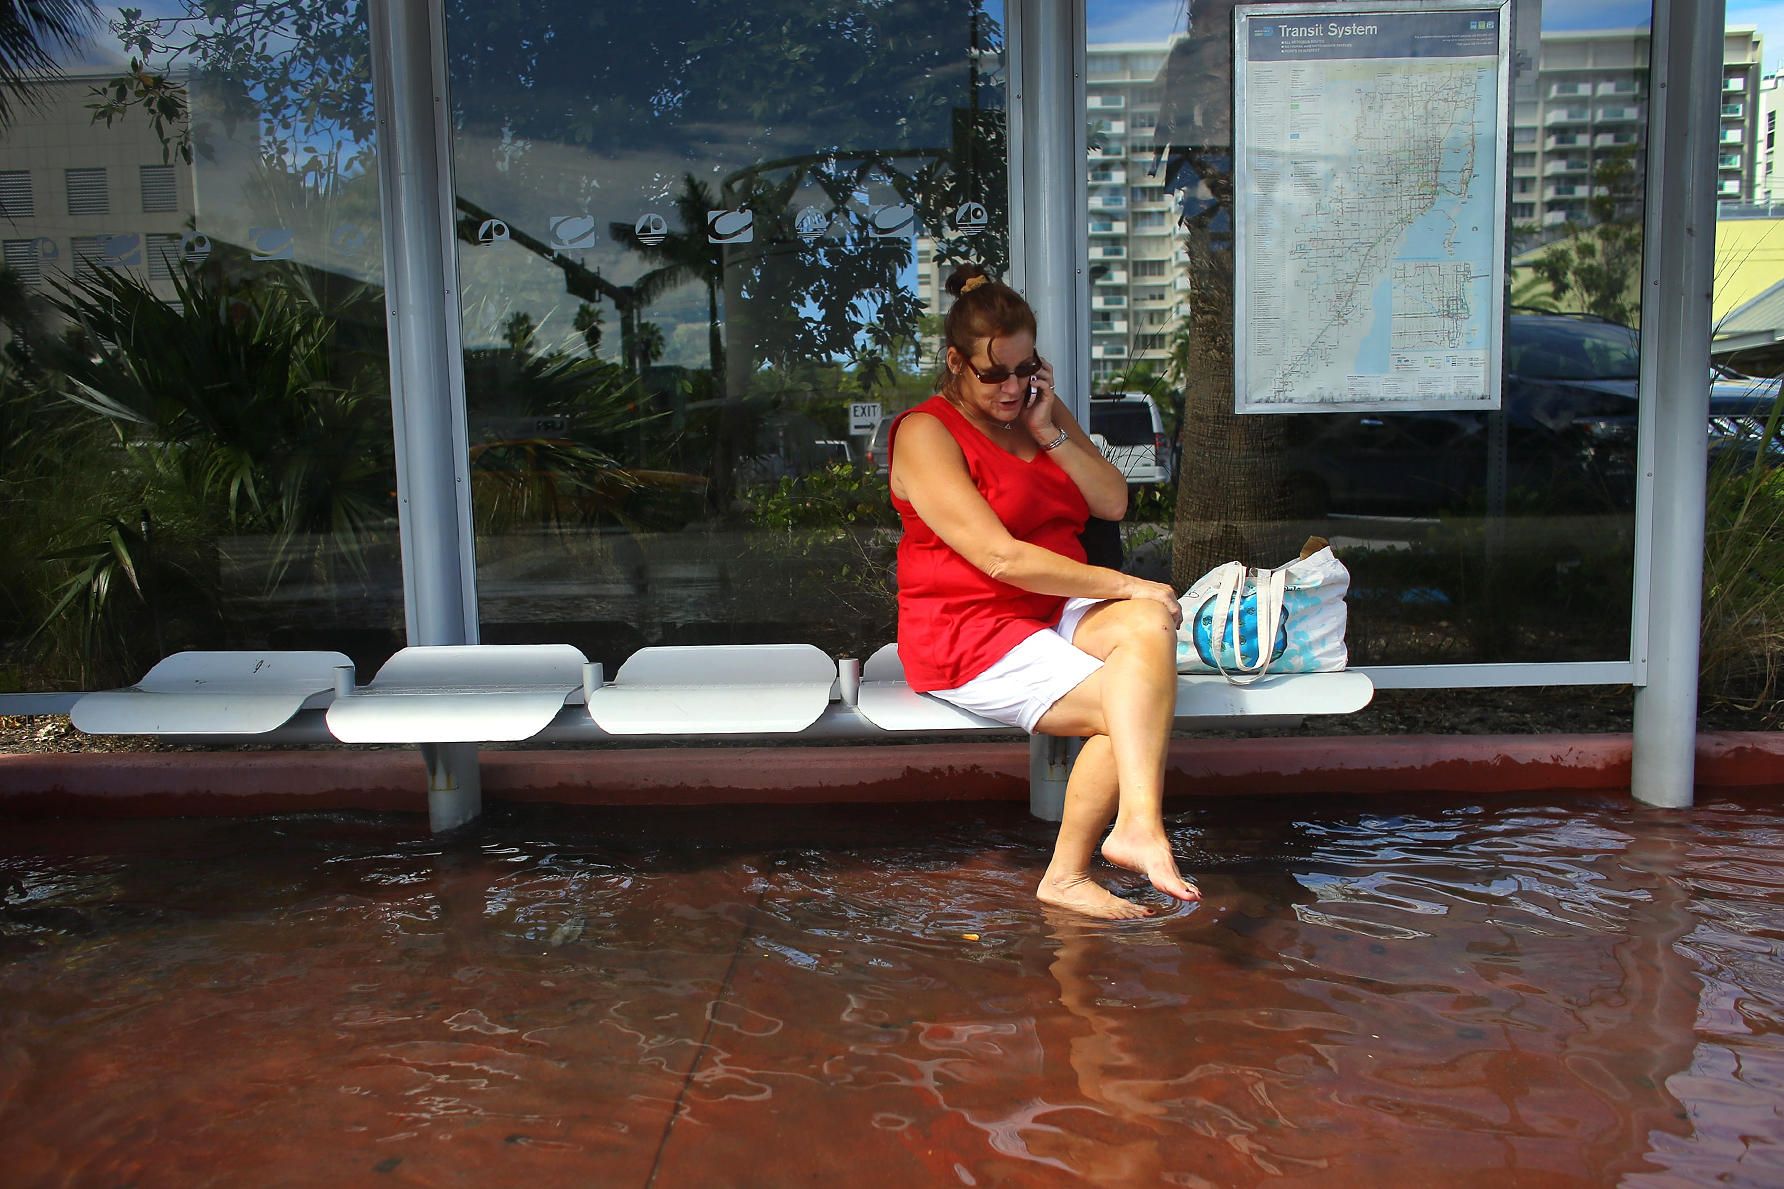 Cindy Minnix Waits For A Bus In Flooded Street On Oct 18 2017 Miami Beach Changing Climate Is Making Floods Related To High Tides More Frequent